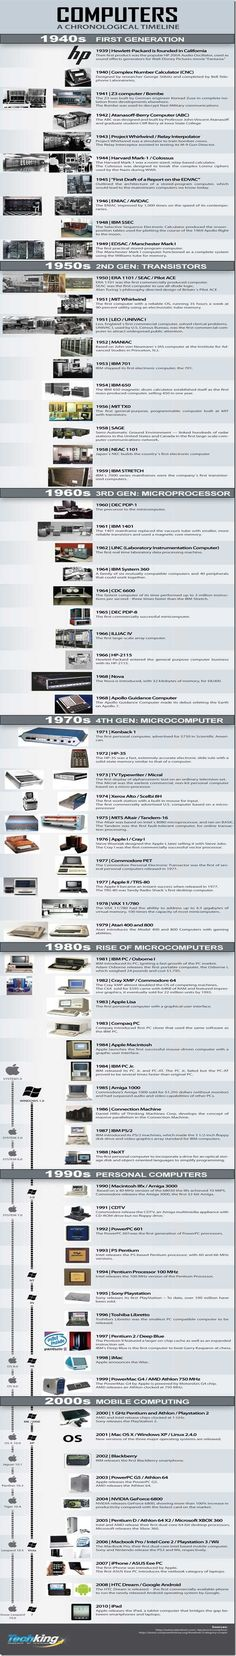 The History of Computers | #infographic d'autres gadgets ici : http://amzn.to/2kWxdPn